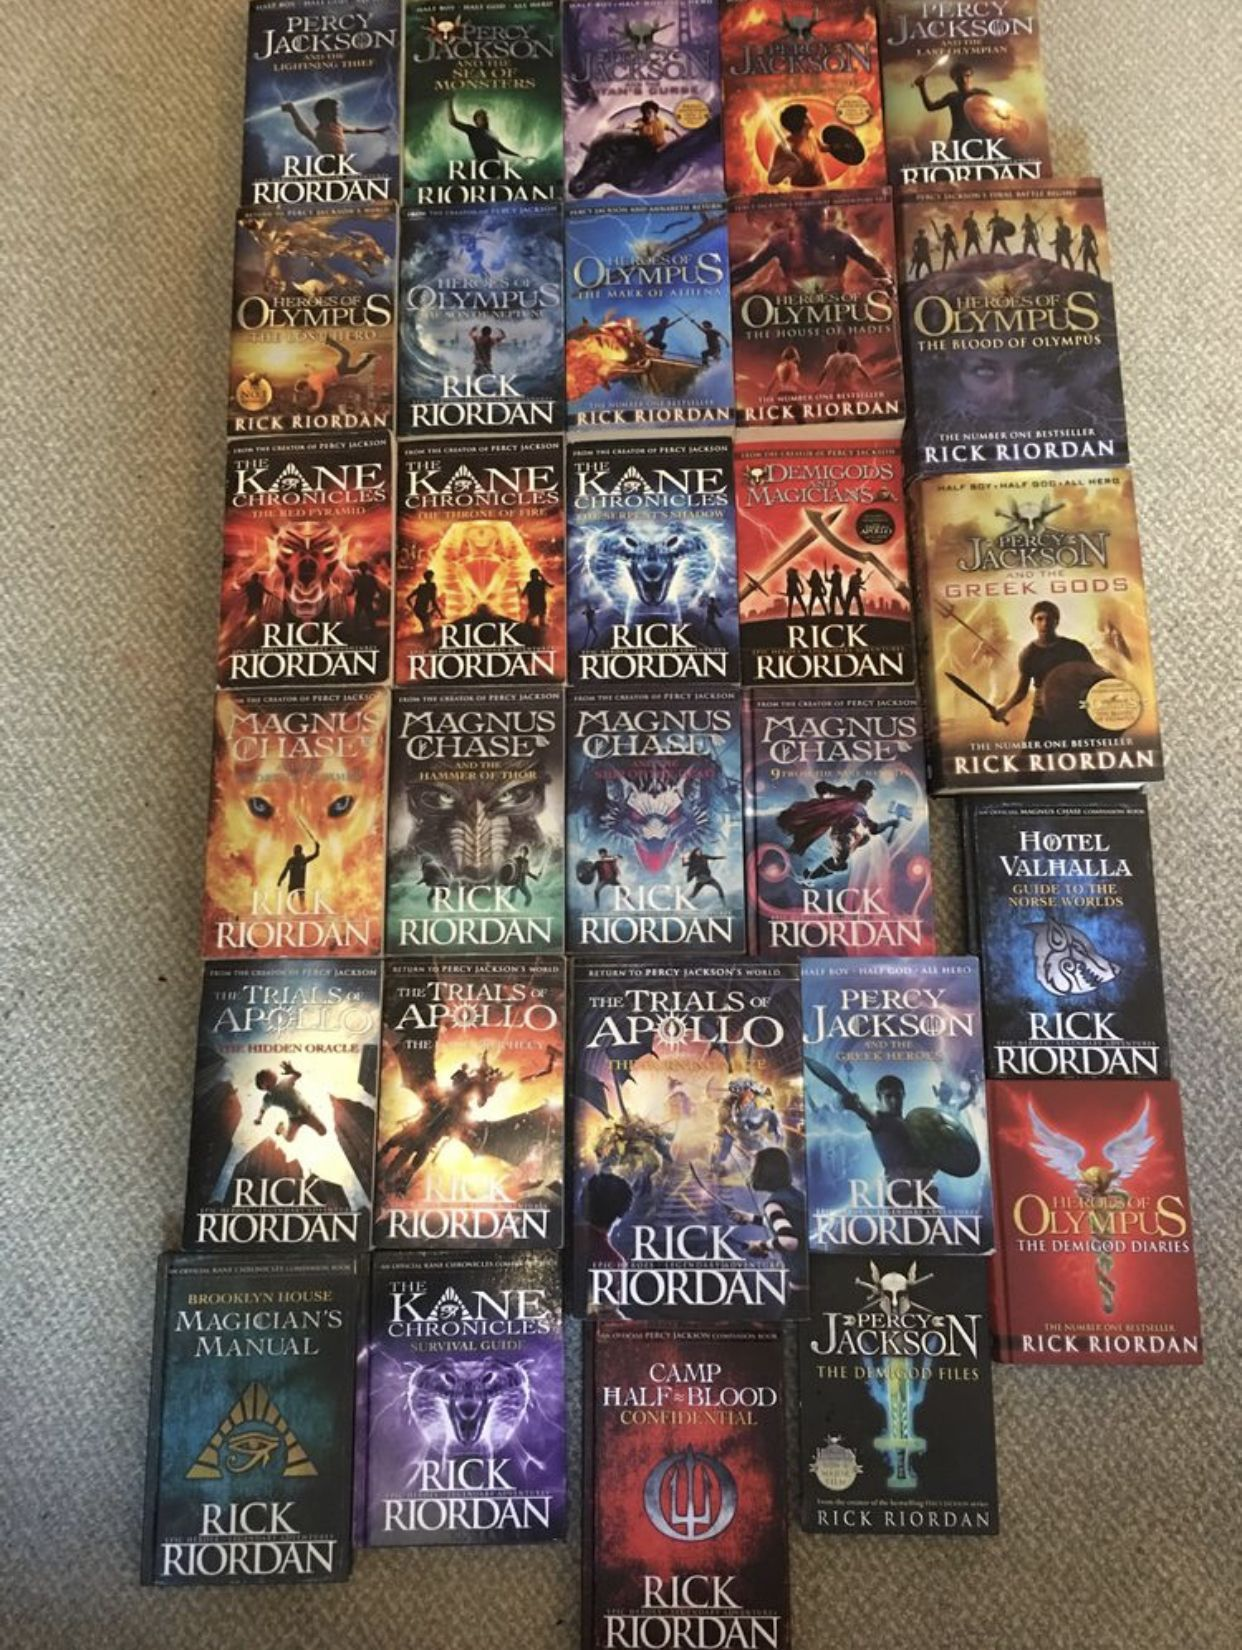 Pin By Srta Potter On Books In 2020 Percy Jackson Books Percy Jackson Fan Art Percy Jackson Memes